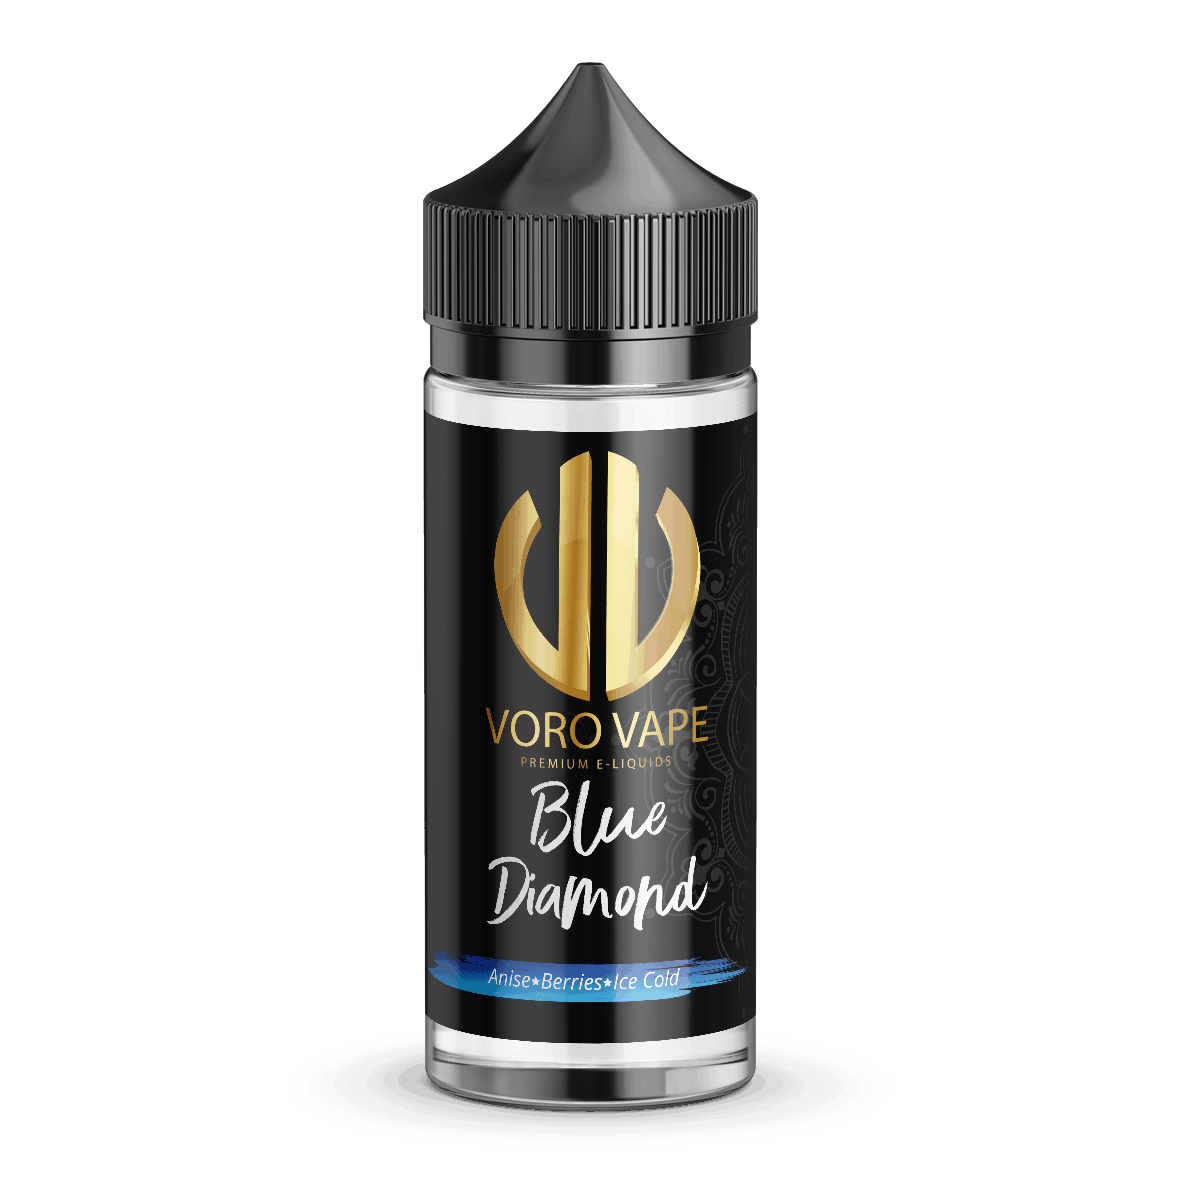 Blue Diamond E-Liquid Shortfill by Voro Vape